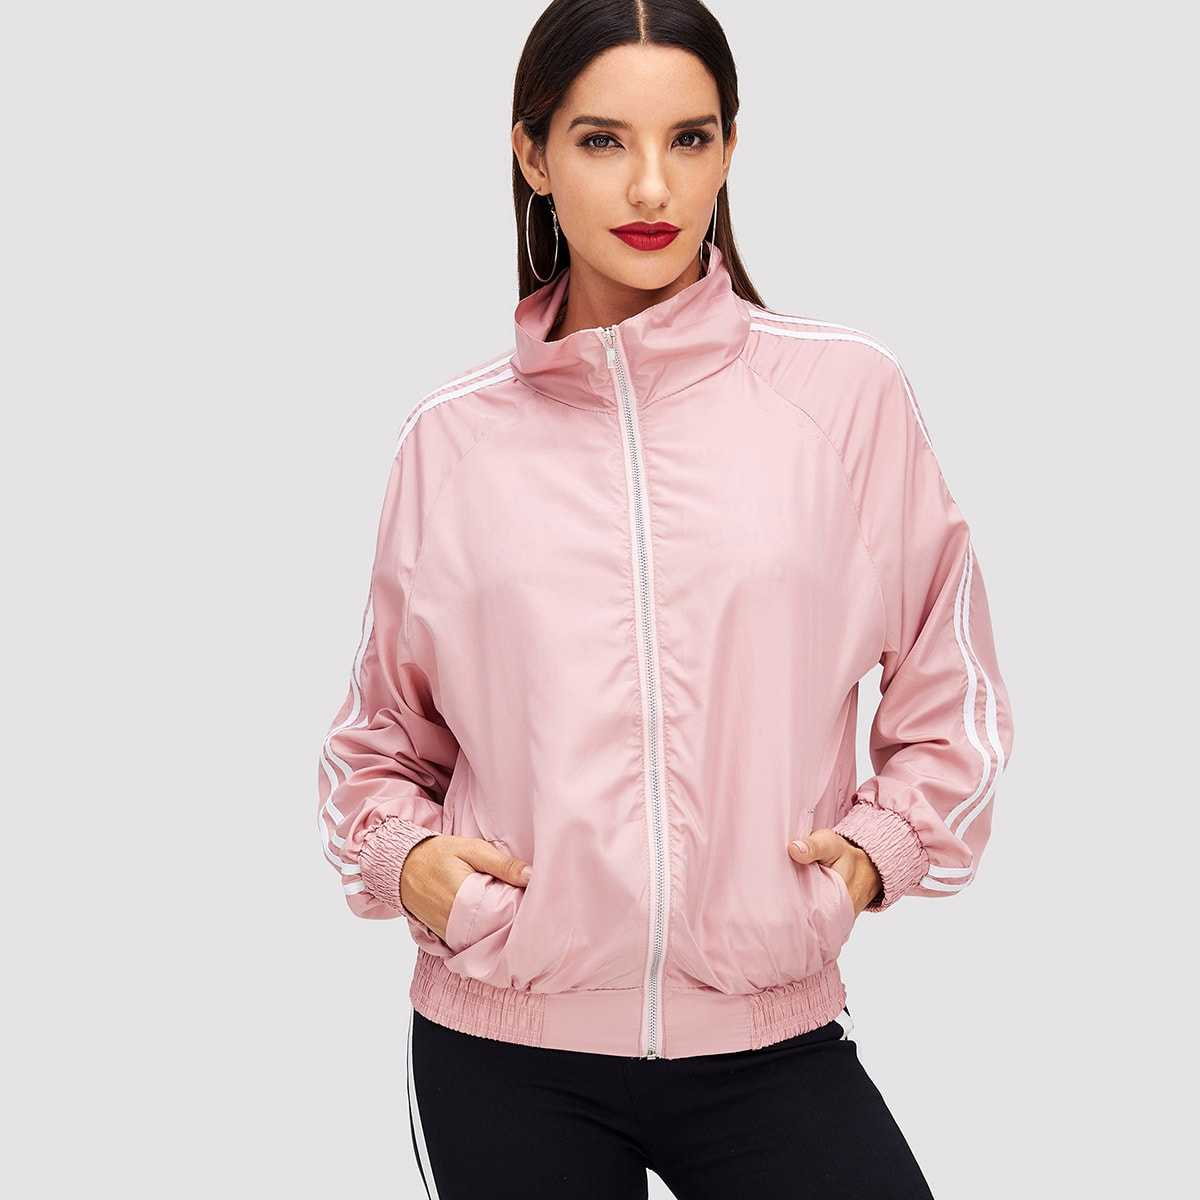 Stripe Contrast High Neck Jacket in Pink by ROMWE on GOOFASH